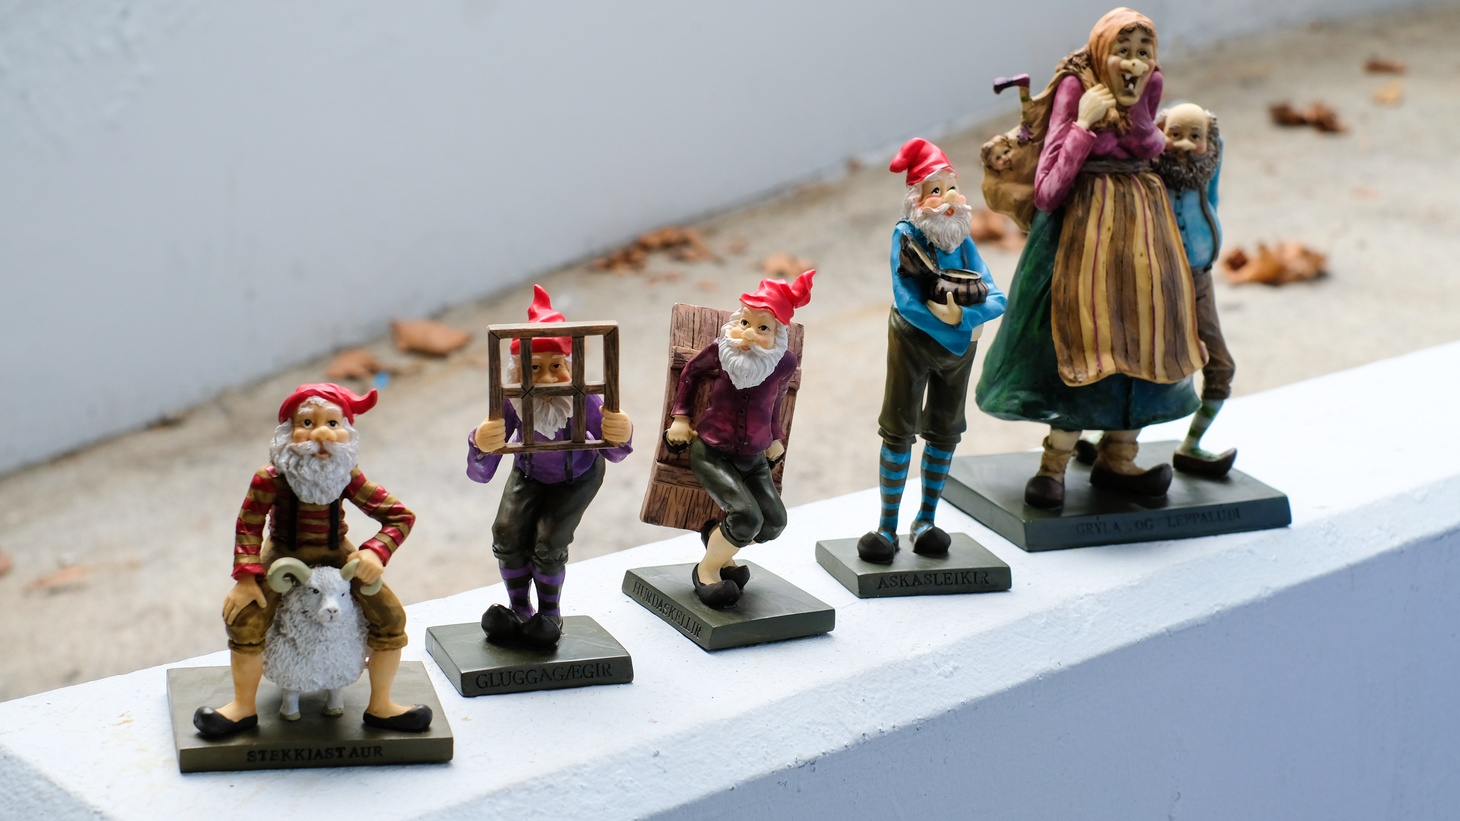 Some of the Yule Lads.